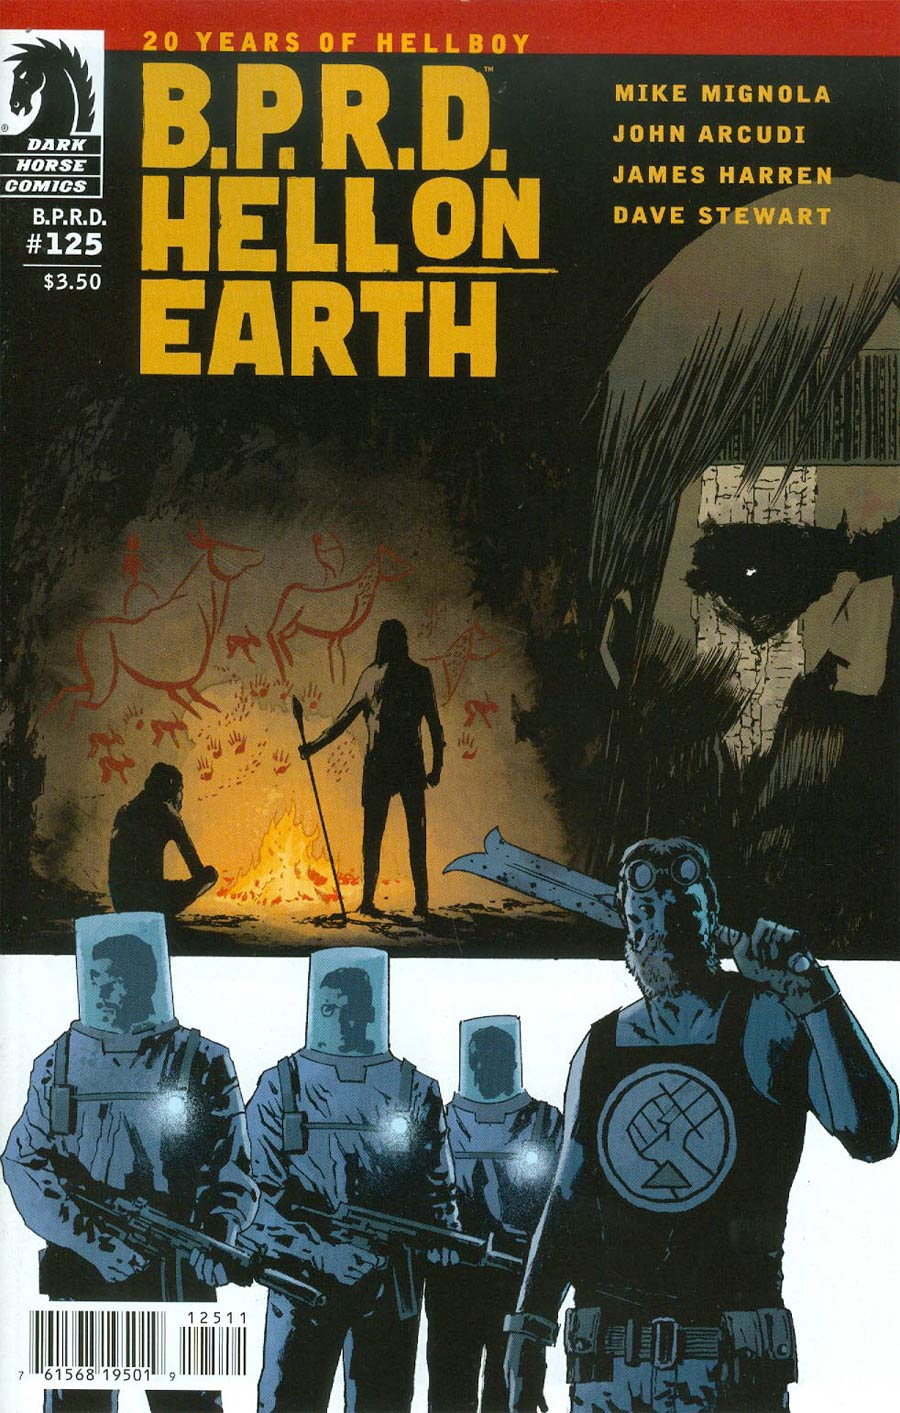 BPRD Hell On Earth #125